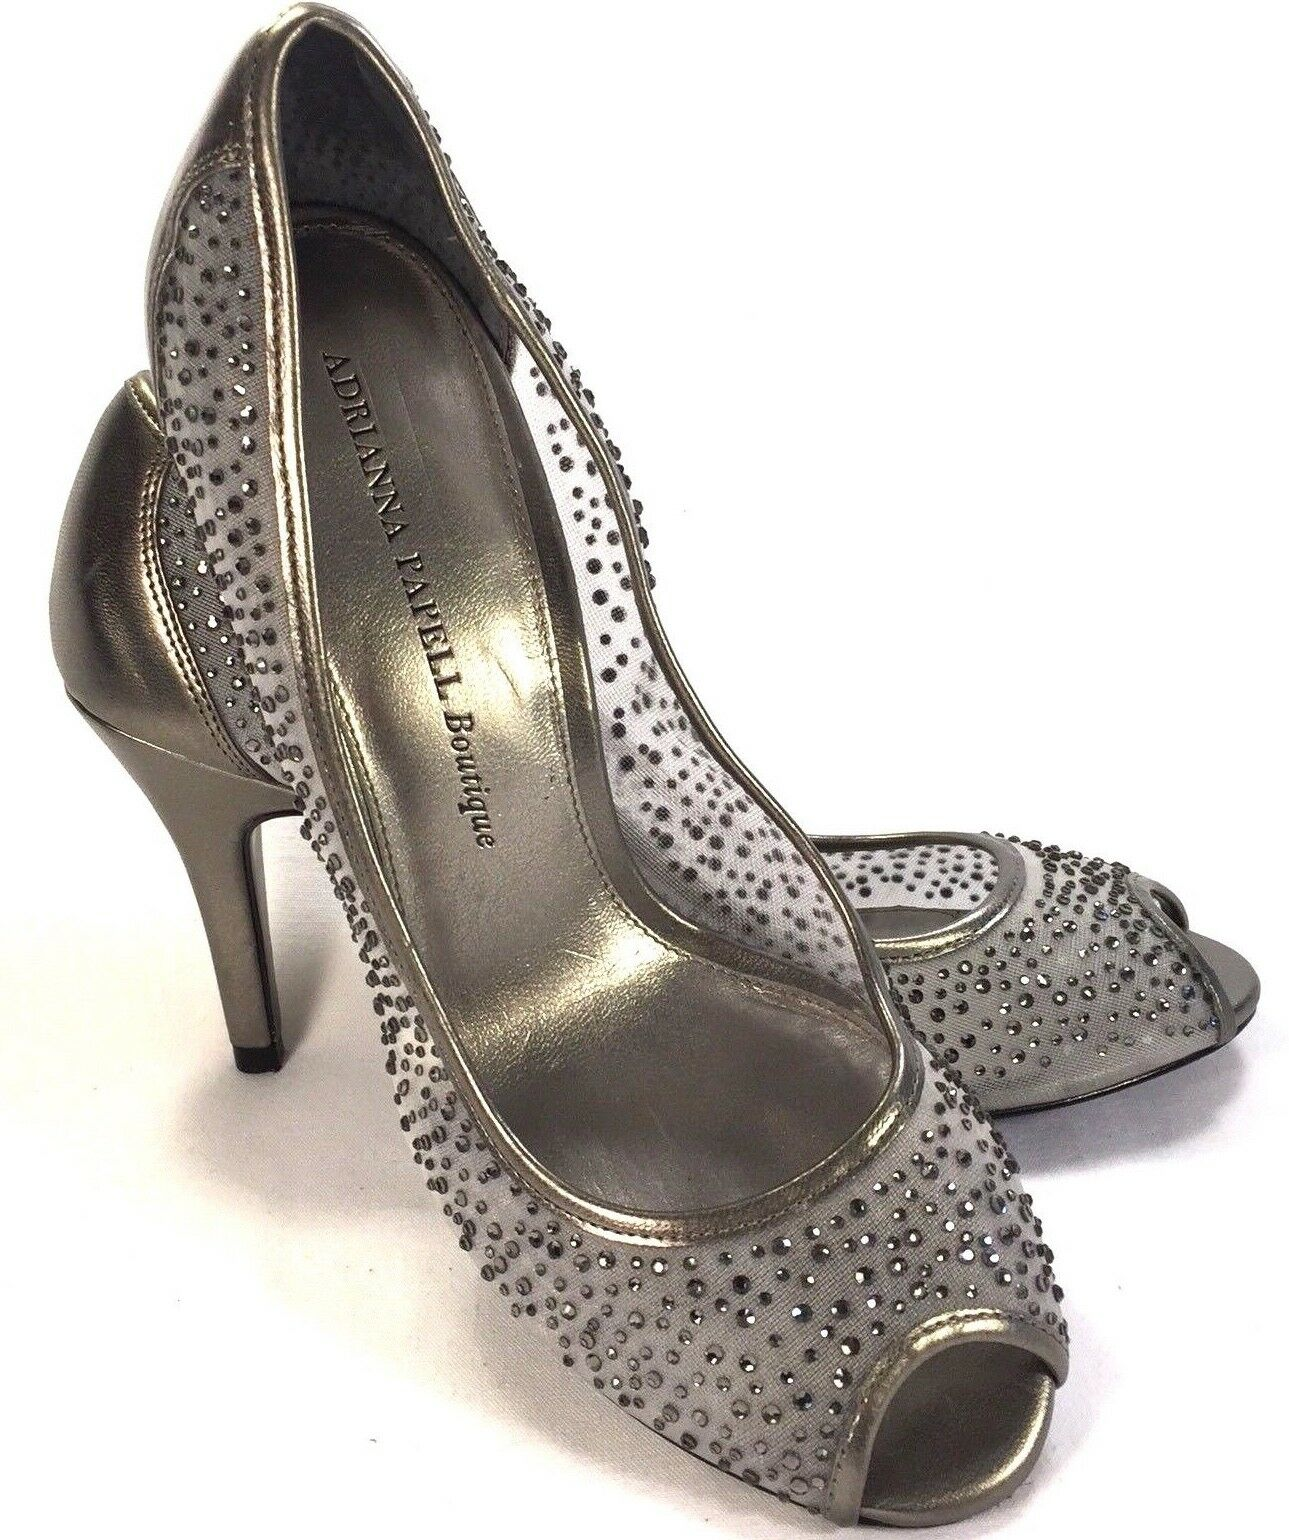 Adrianna Papell Boutique Silvery Peep Toe Jeweled Pumps Size 8-1 2M shoes